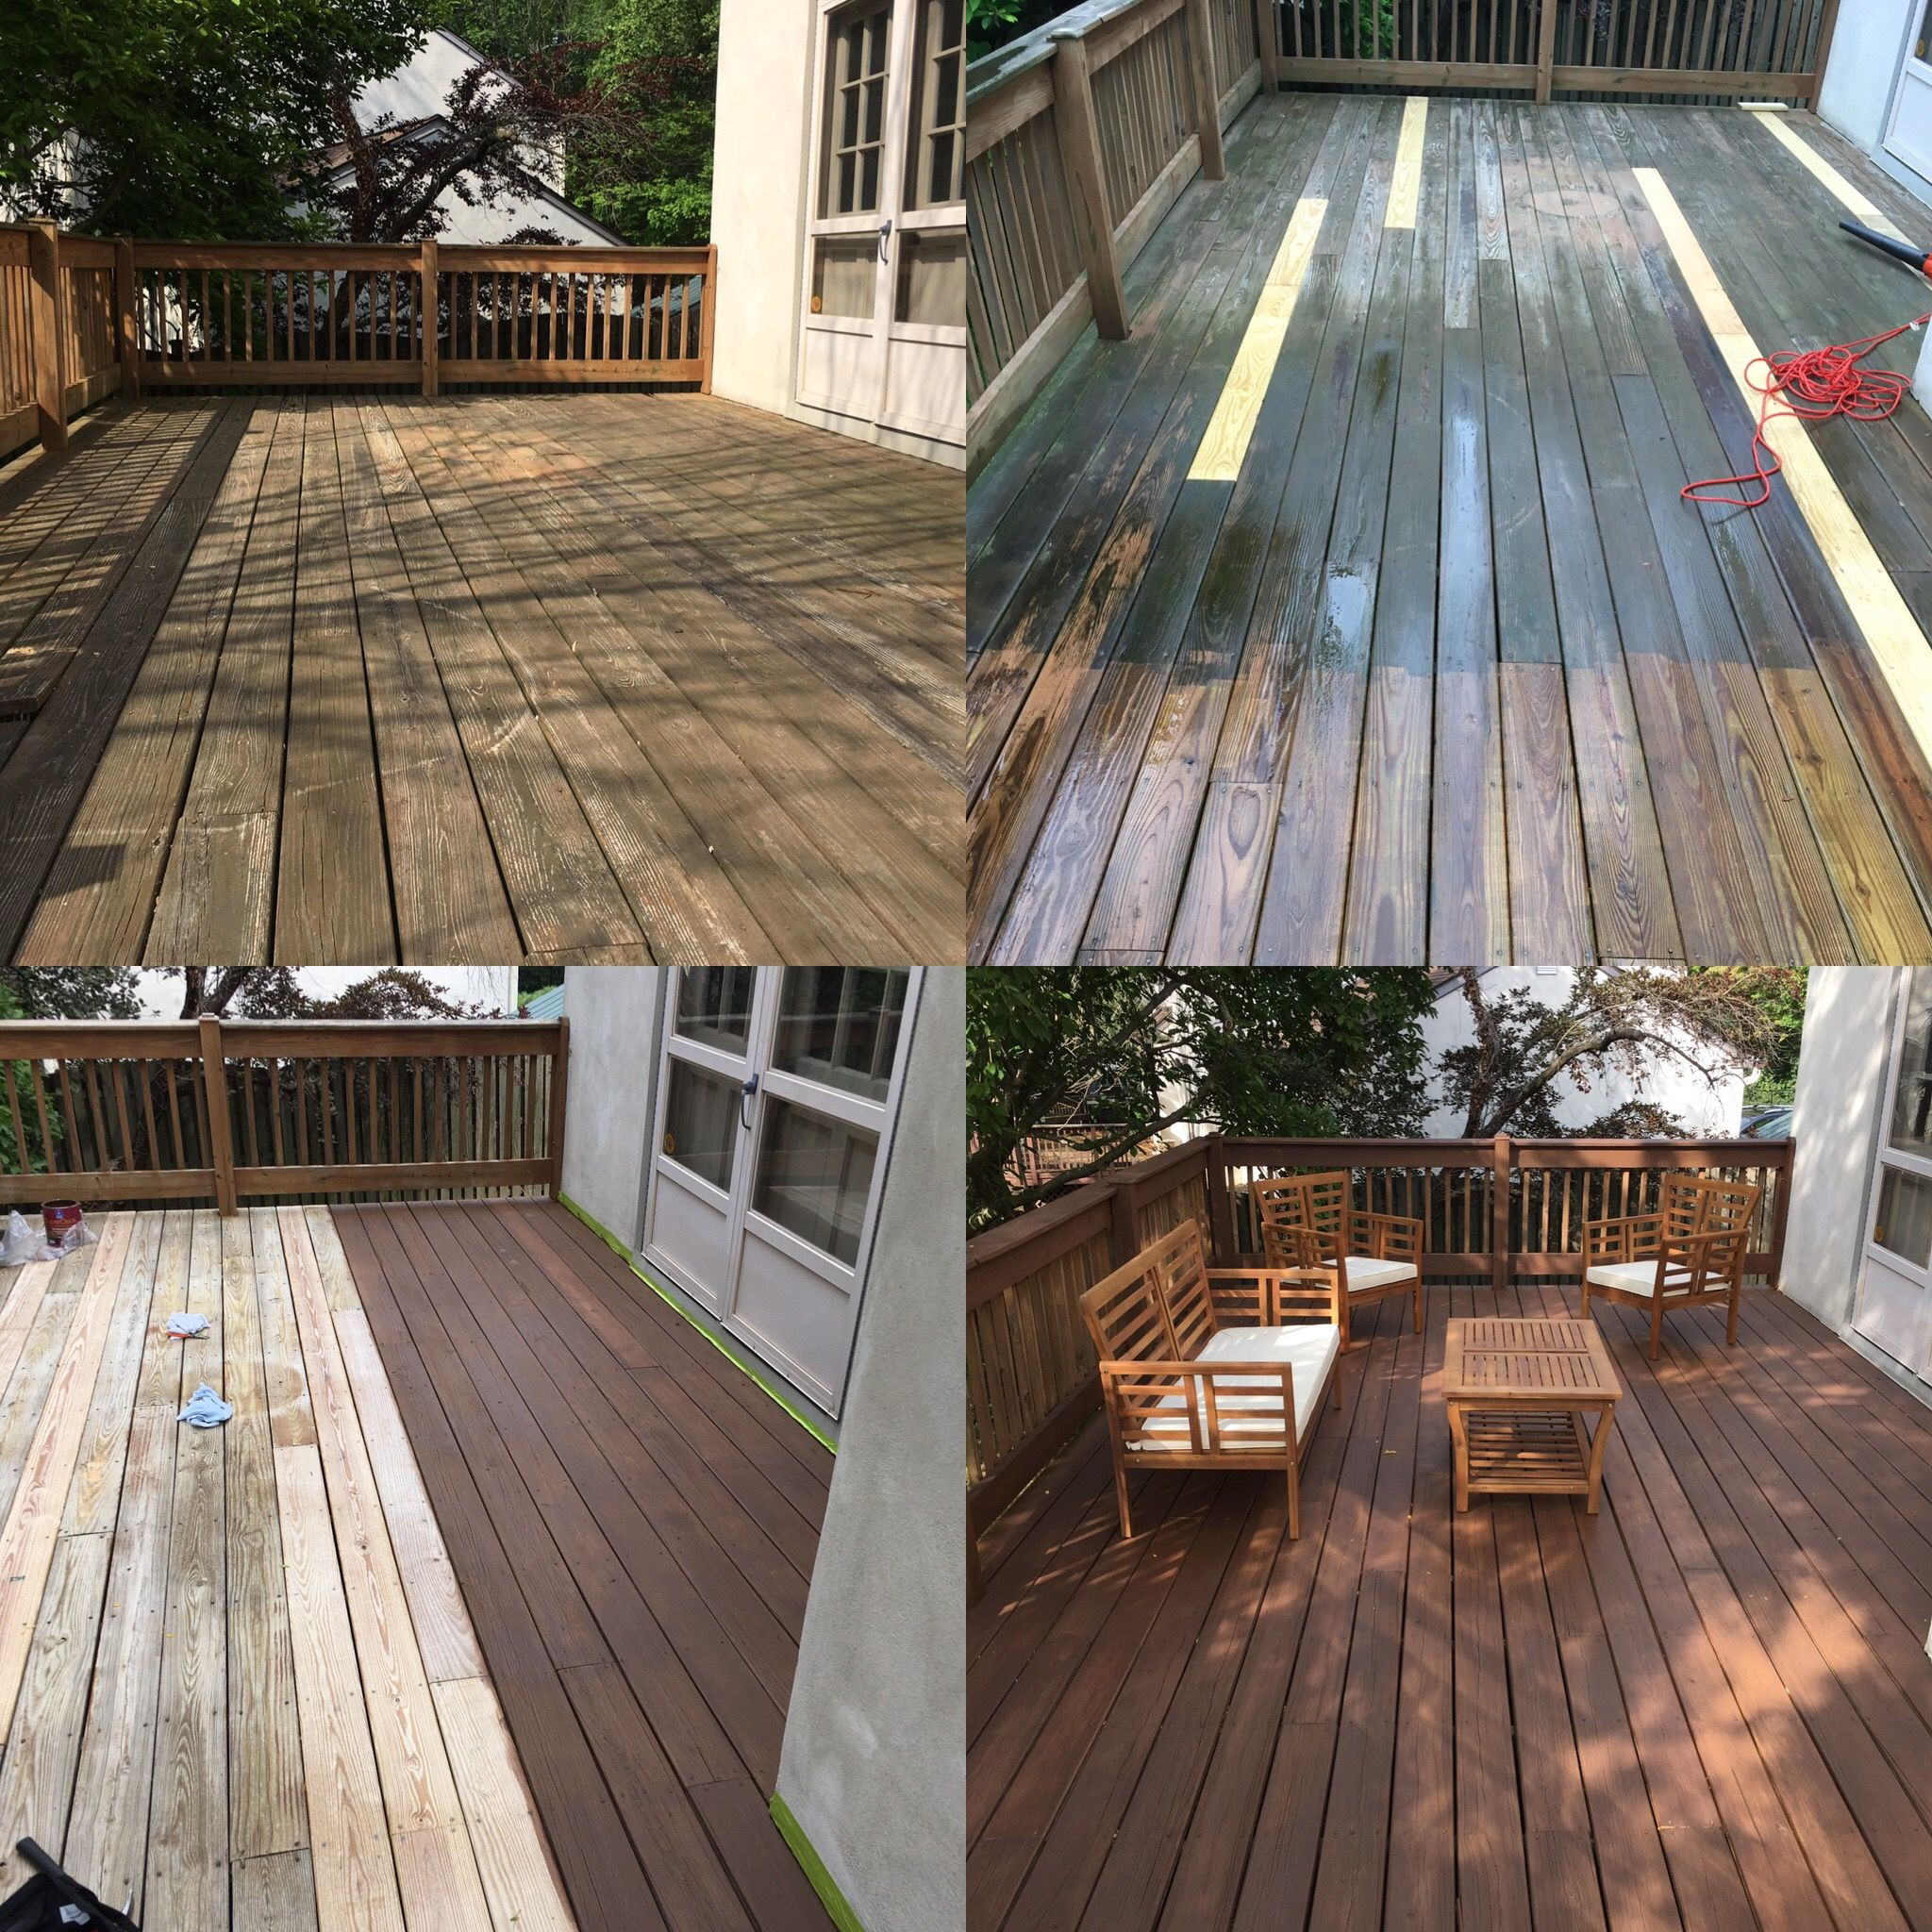 Cool Deck Paint Sherwin Williams  Deck renovation with Sherwin Williams Hawthorne semisolid